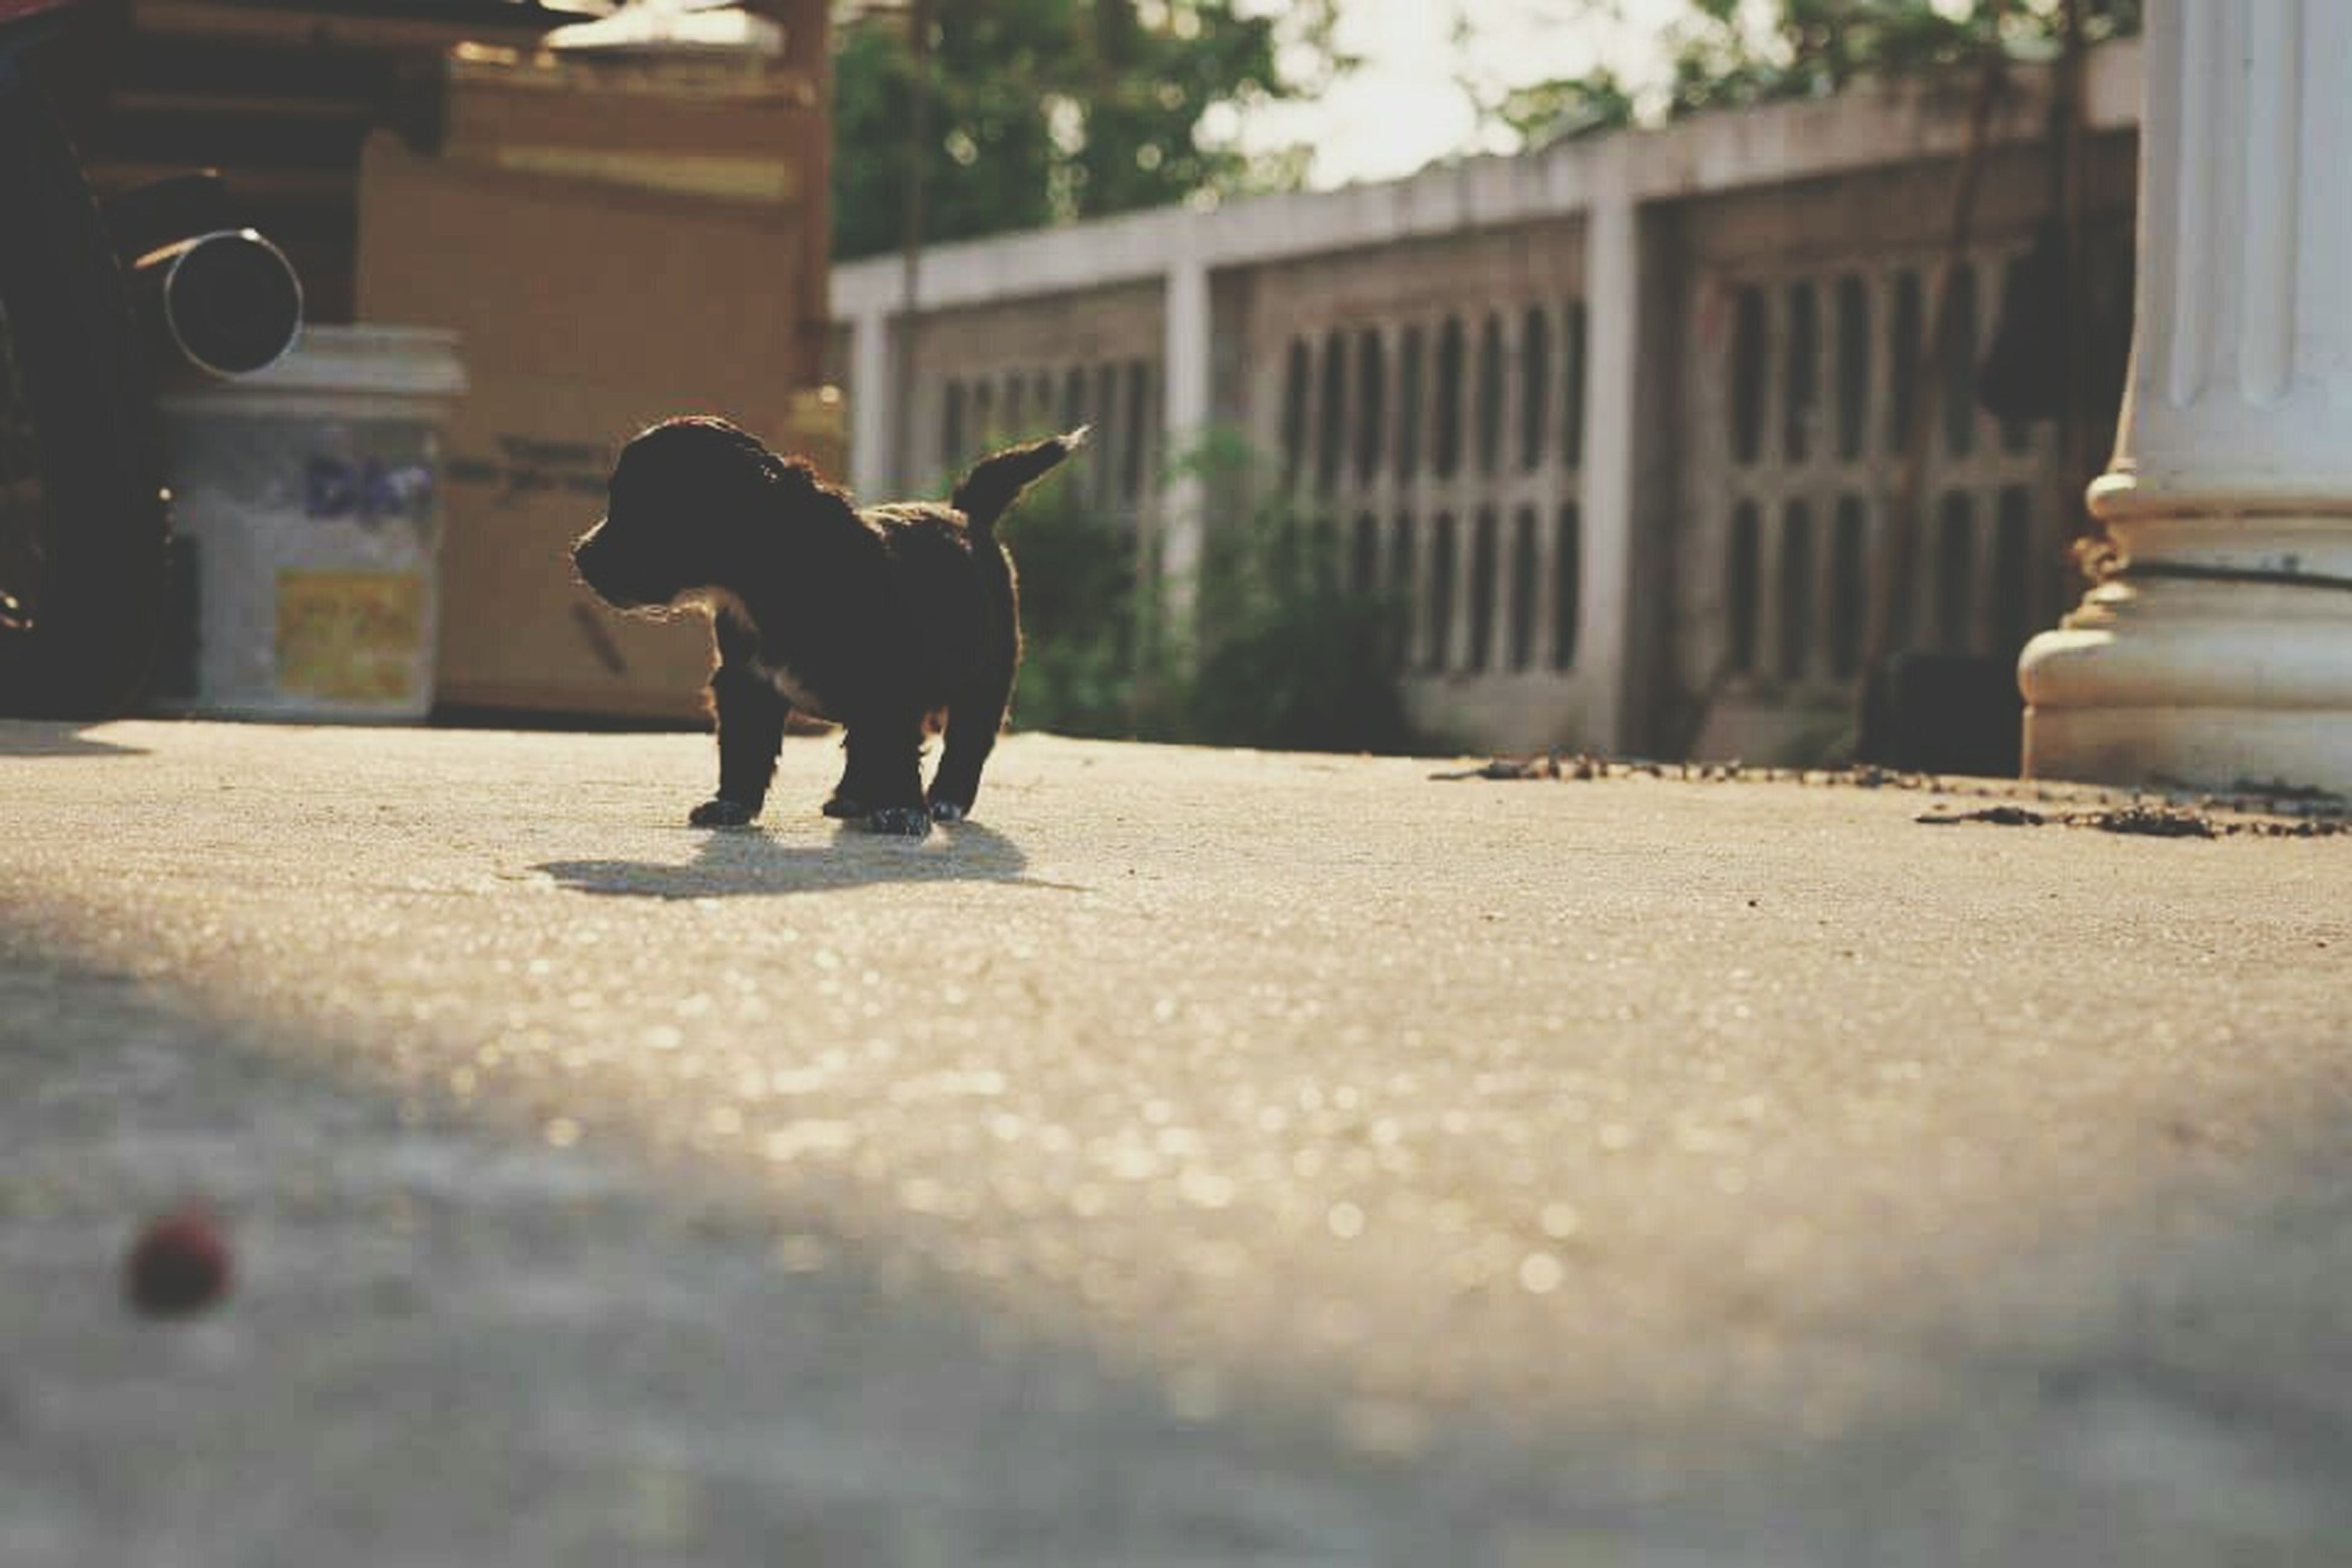 one animal, animal themes, street, dog, building exterior, architecture, built structure, pets, selective focus, surface level, domestic animals, focus on foreground, full length, day, outdoors, mammal, no people, road, sunlight, walking